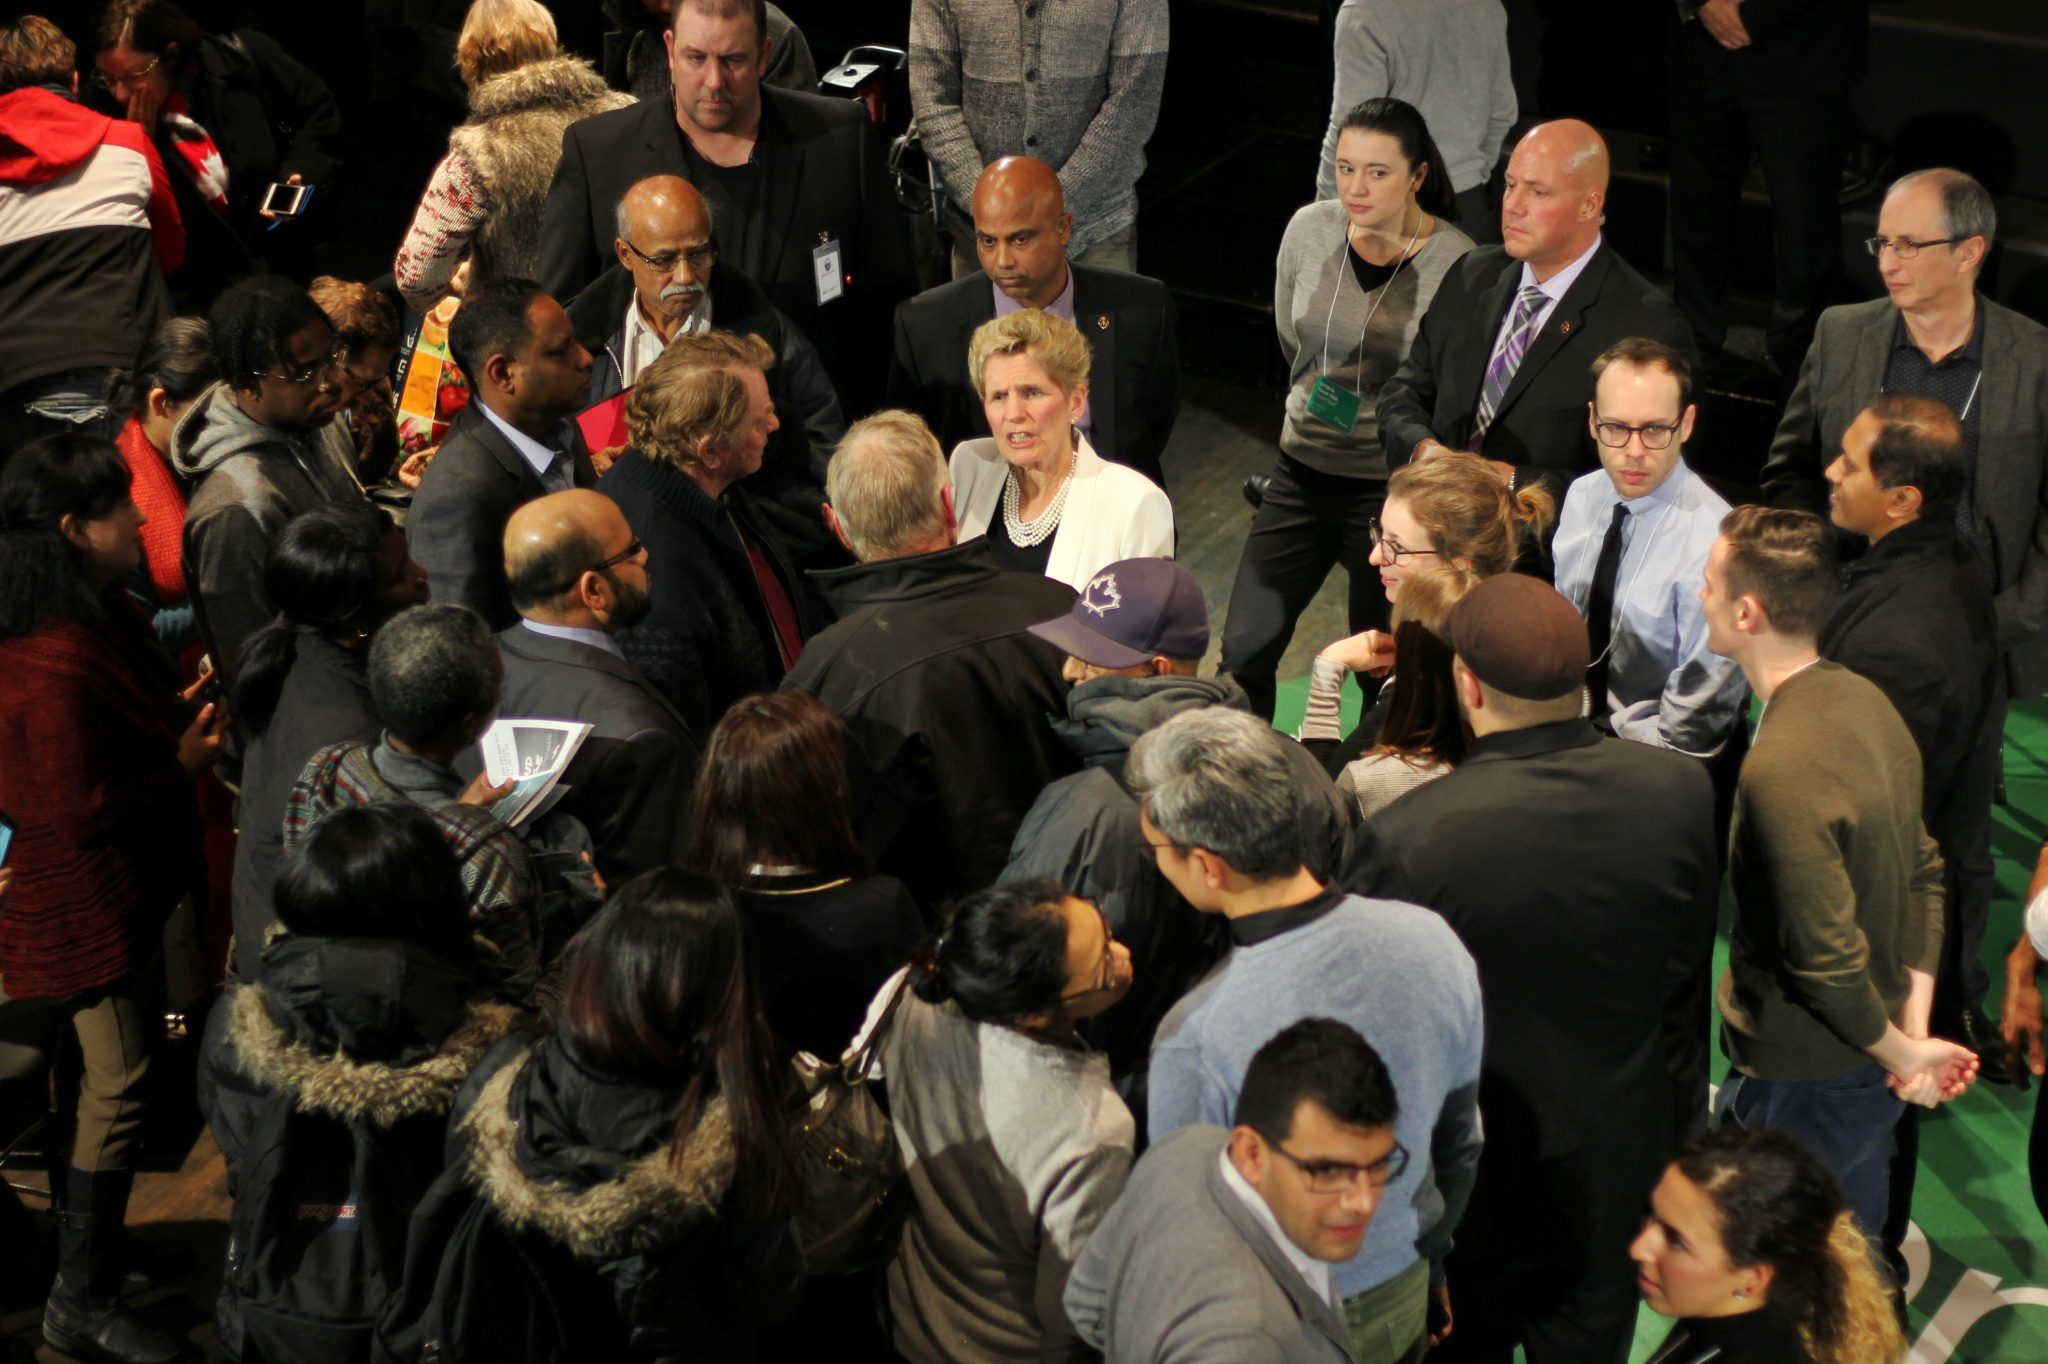 Kathleen Wynne faces tough questions at town hall chat